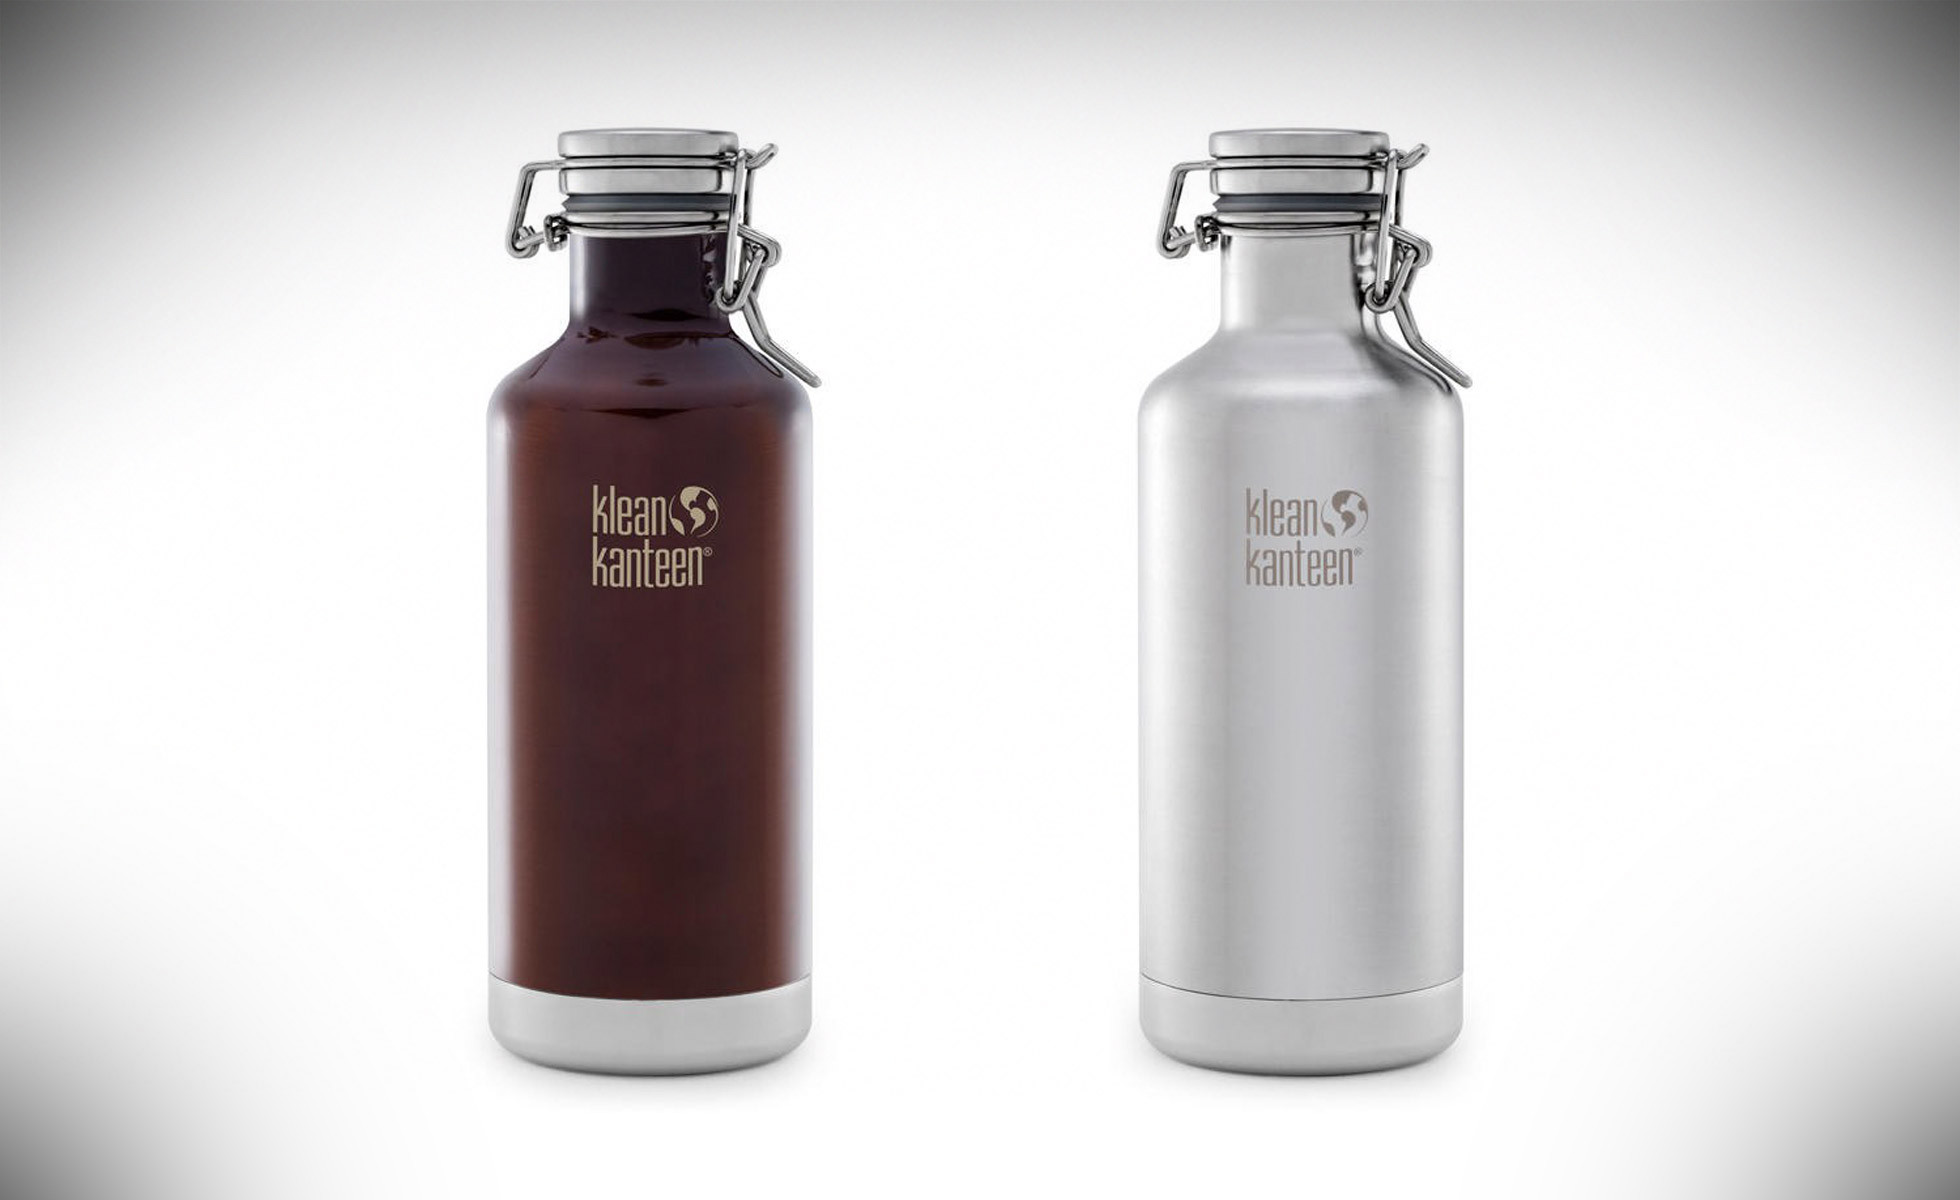 Klean Kanteen's insulated Beer Growler – tailgating gear